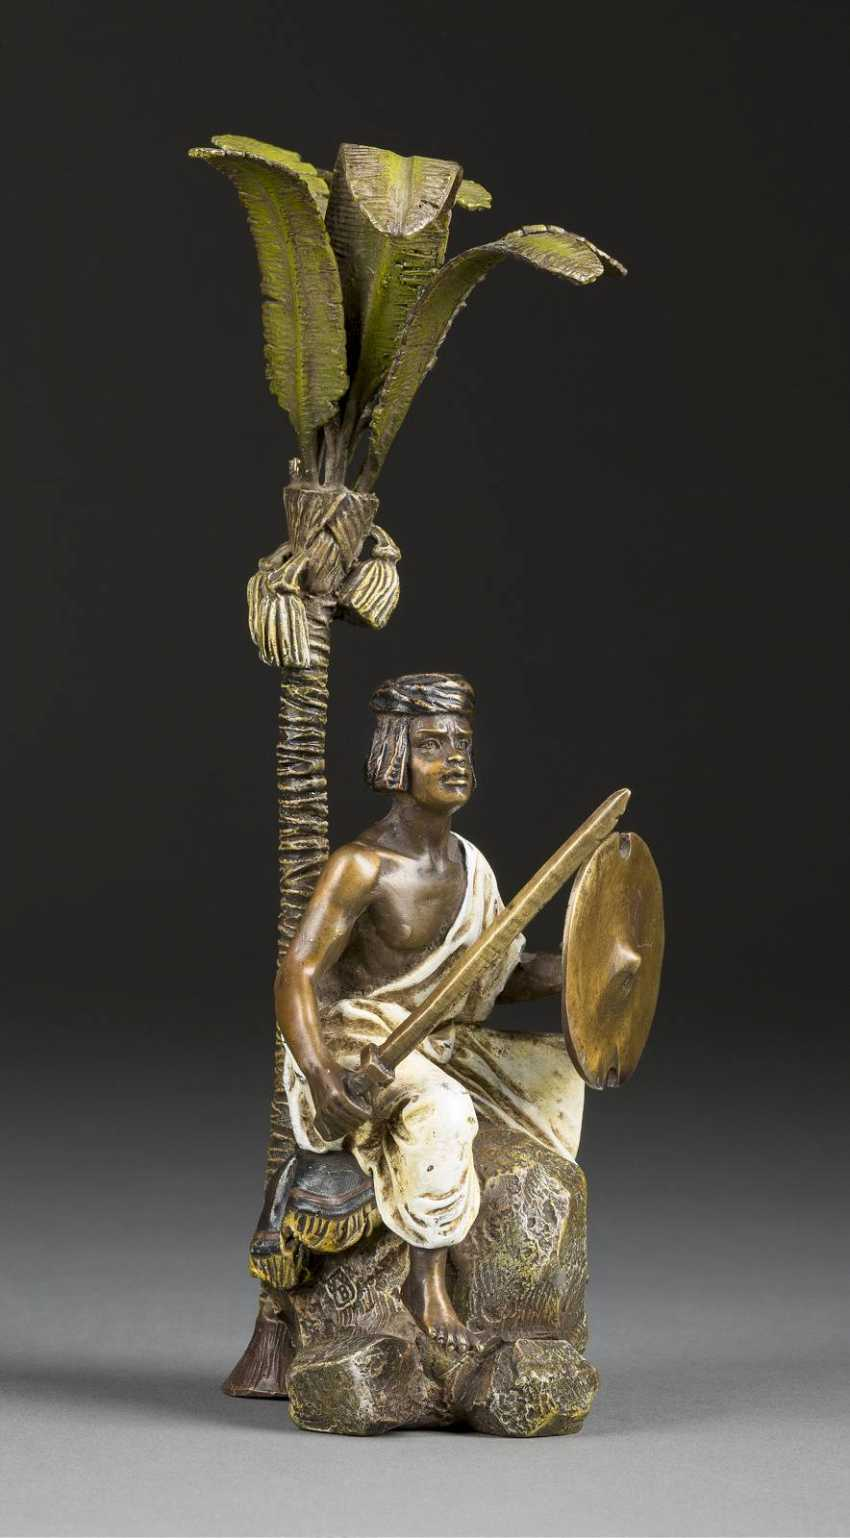 FRANZ XAVER BERGMANN 1861 - 1932 who was active in Vienna is the seat of the swordsman - photo 1